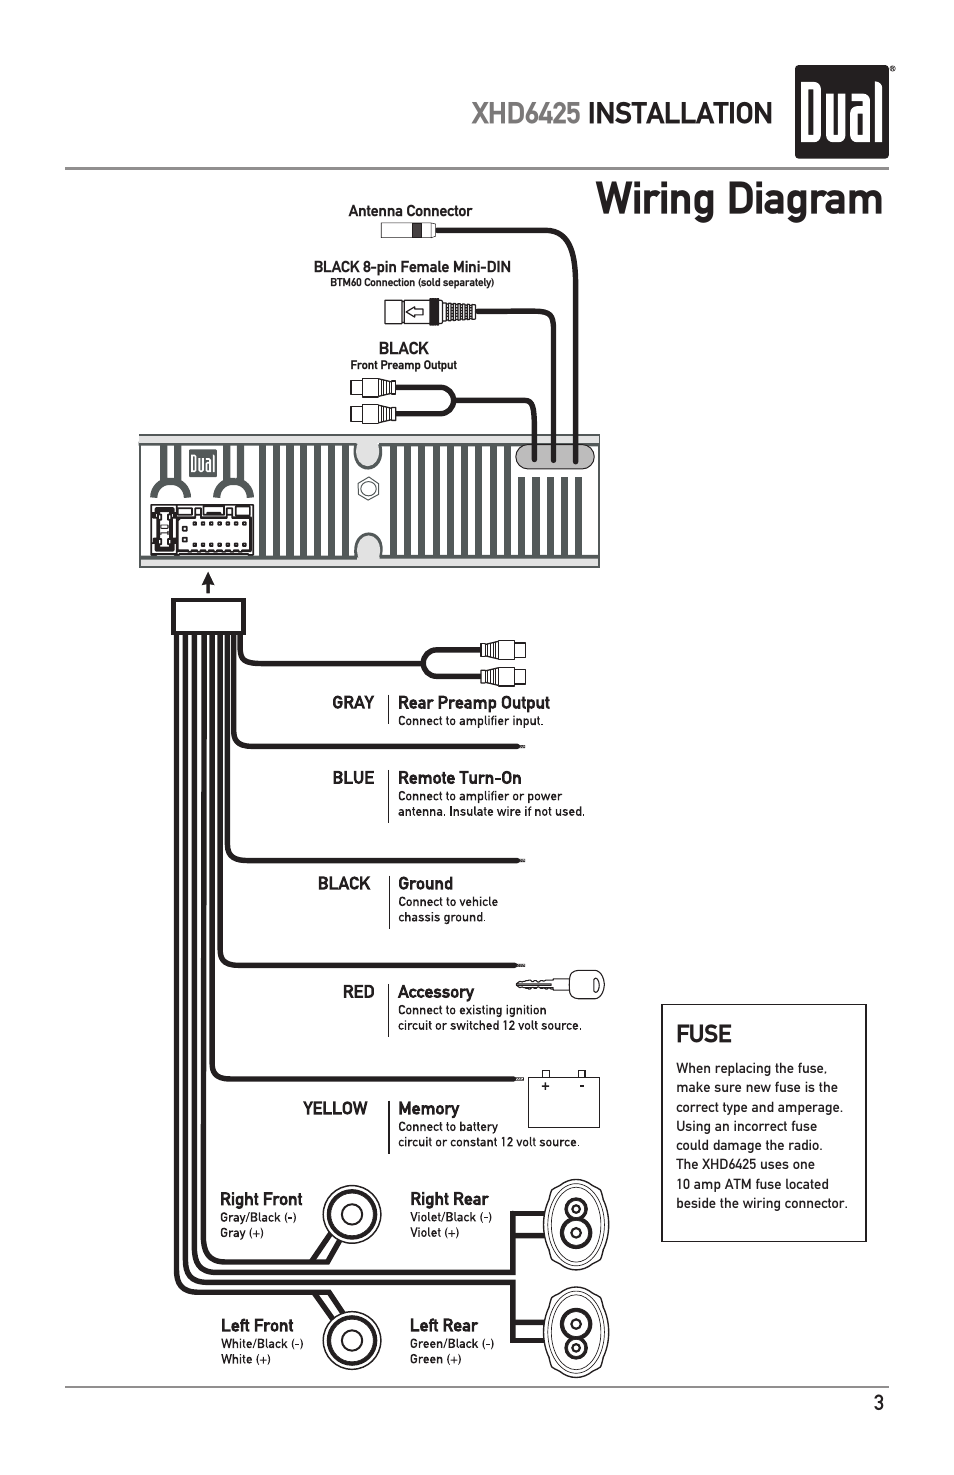 Wiring diagram, Xhd6425 installation | Dual Electronics XHD6425 User Manual  | Page 3 / 28